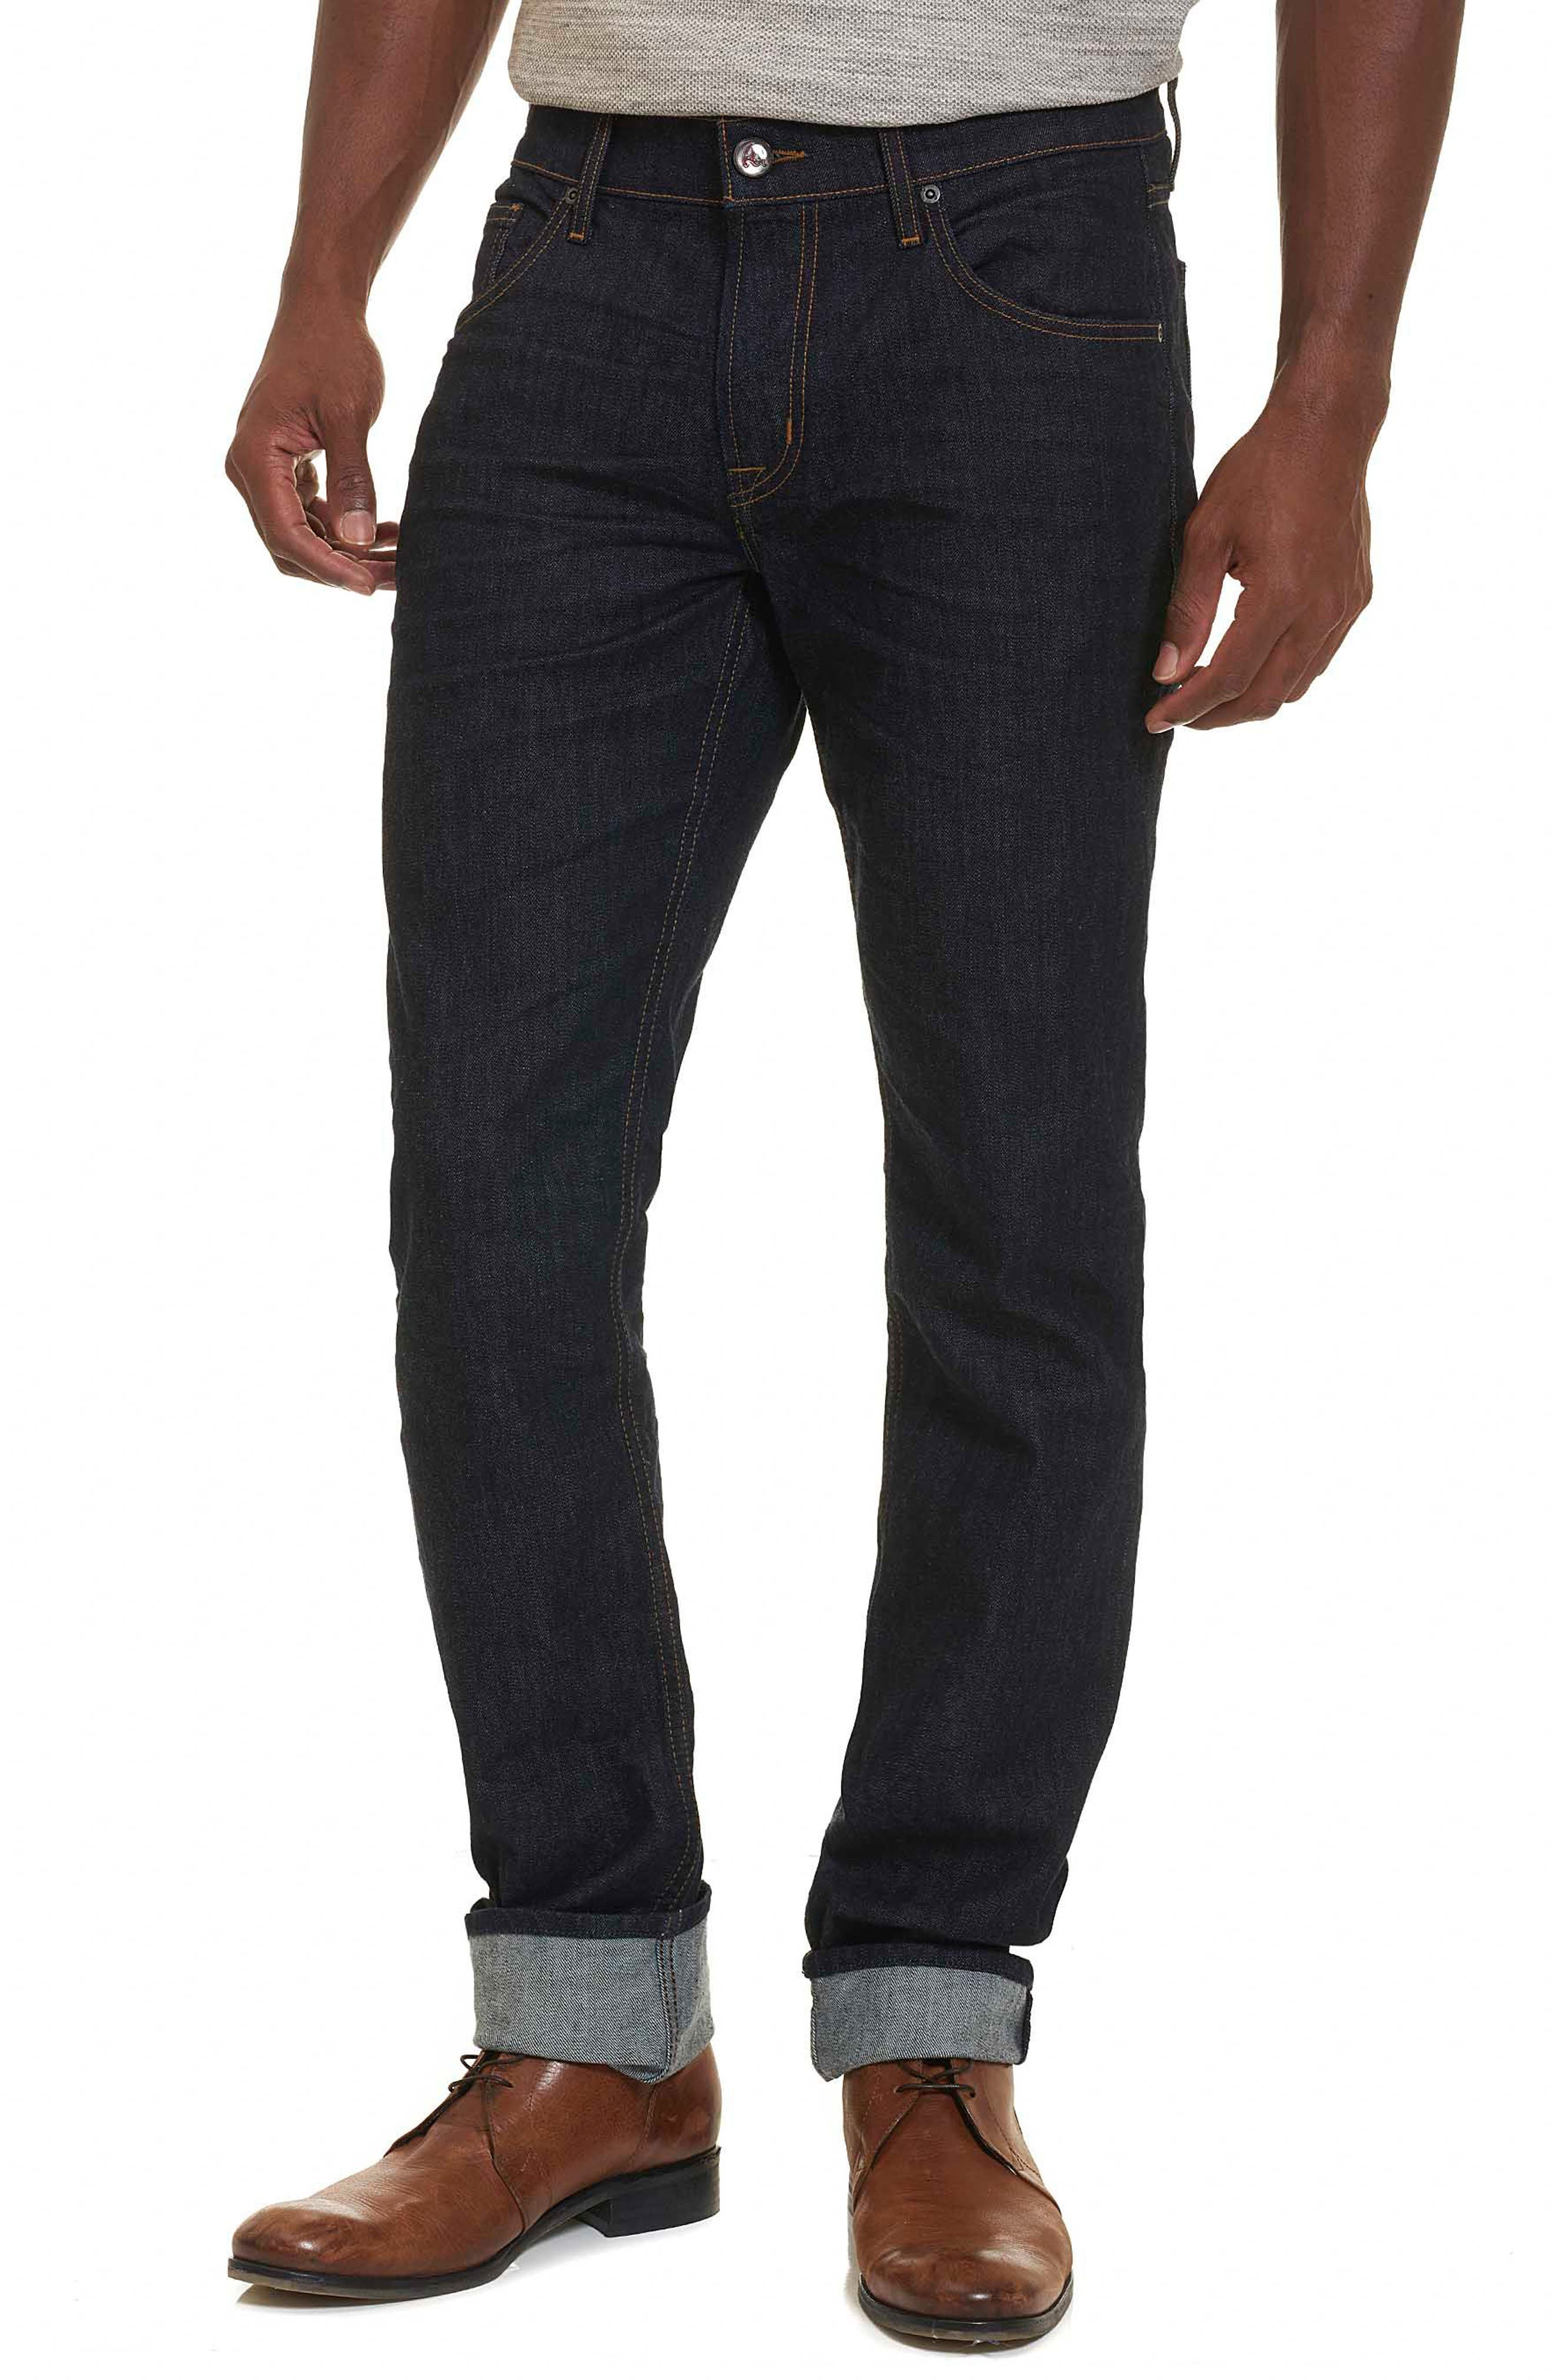 Robert Graham Resist Classic Fit Jeans (Indigo)